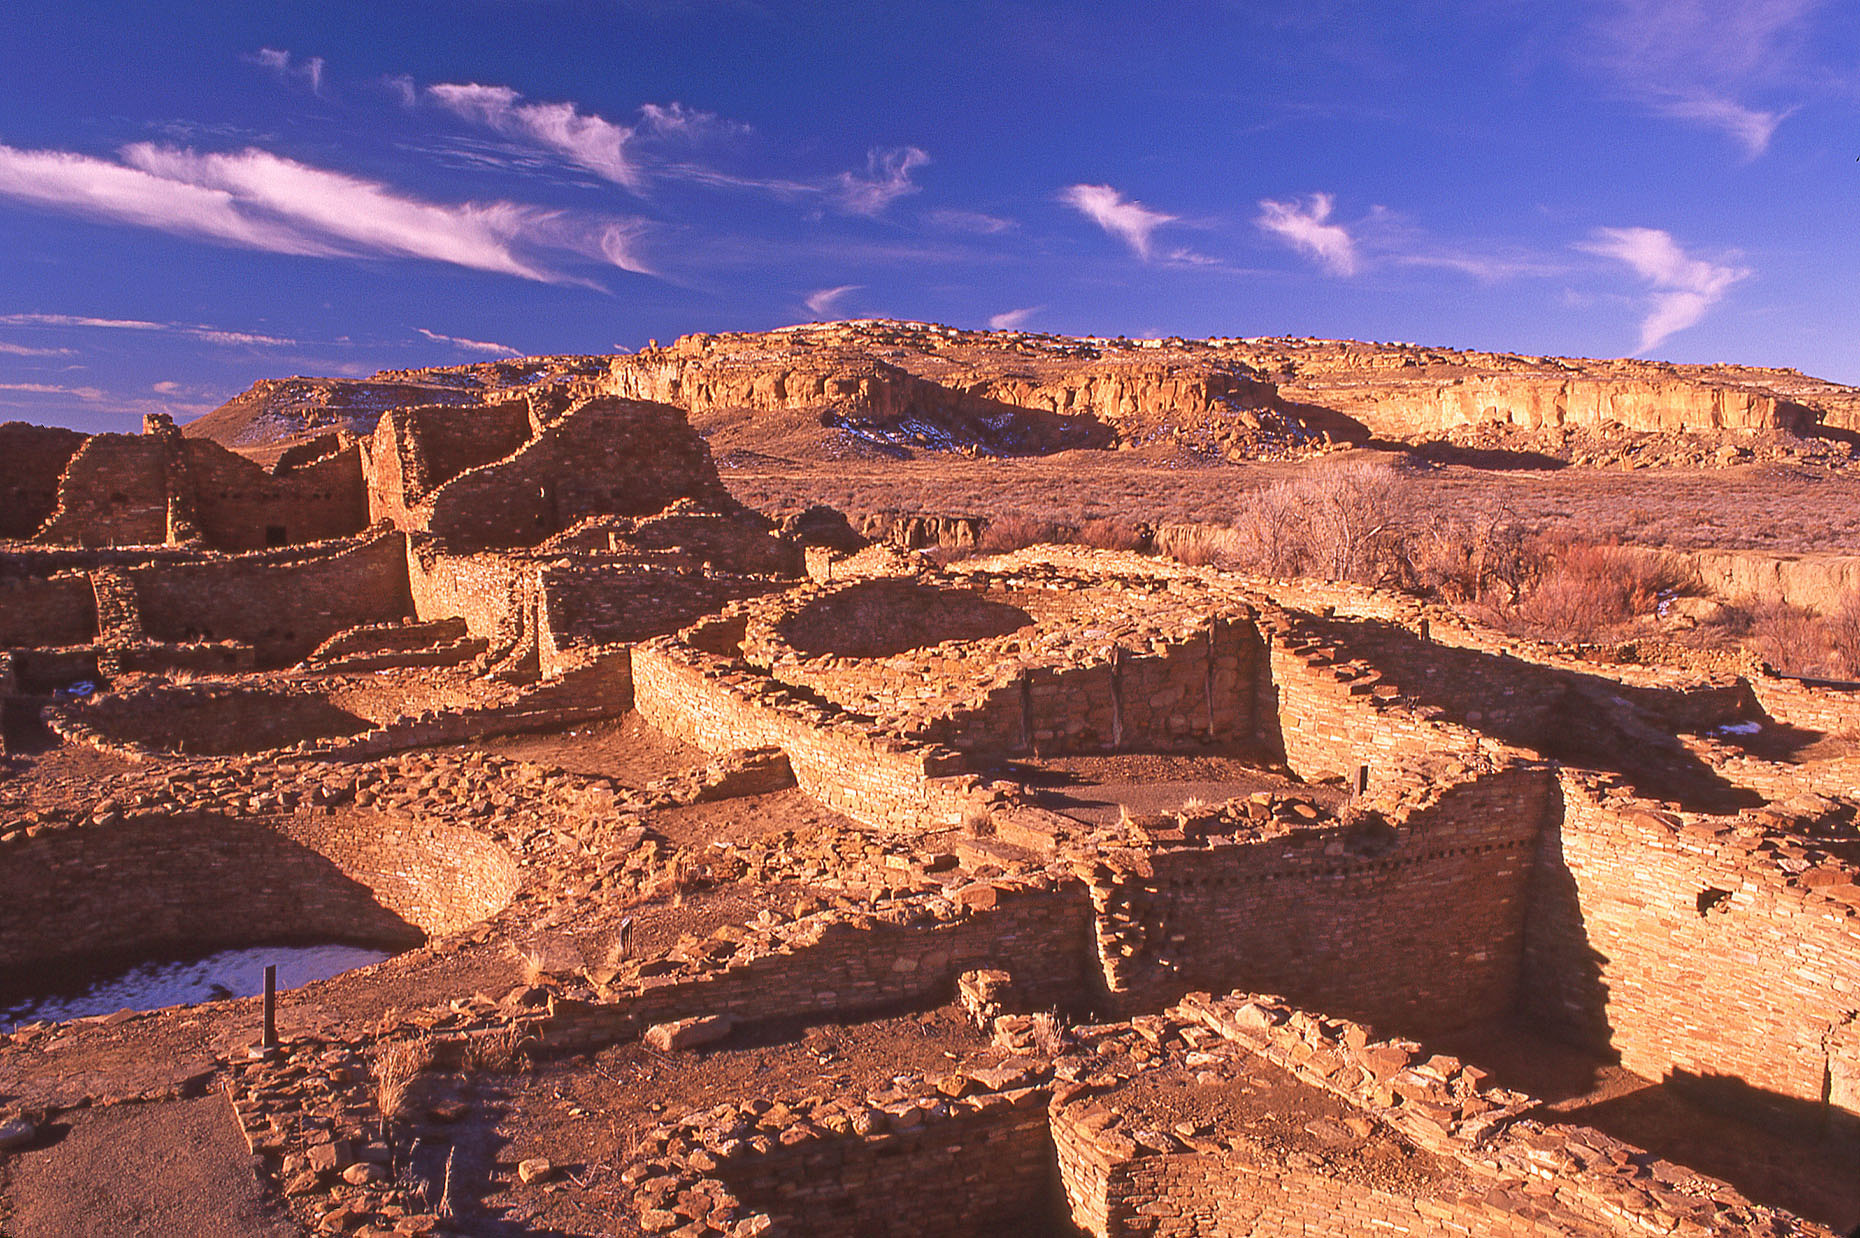 Pueblo del Arroyo, John Annerino, Chaco Culture National Historical Park, NM, UNESCO World Heritage Site